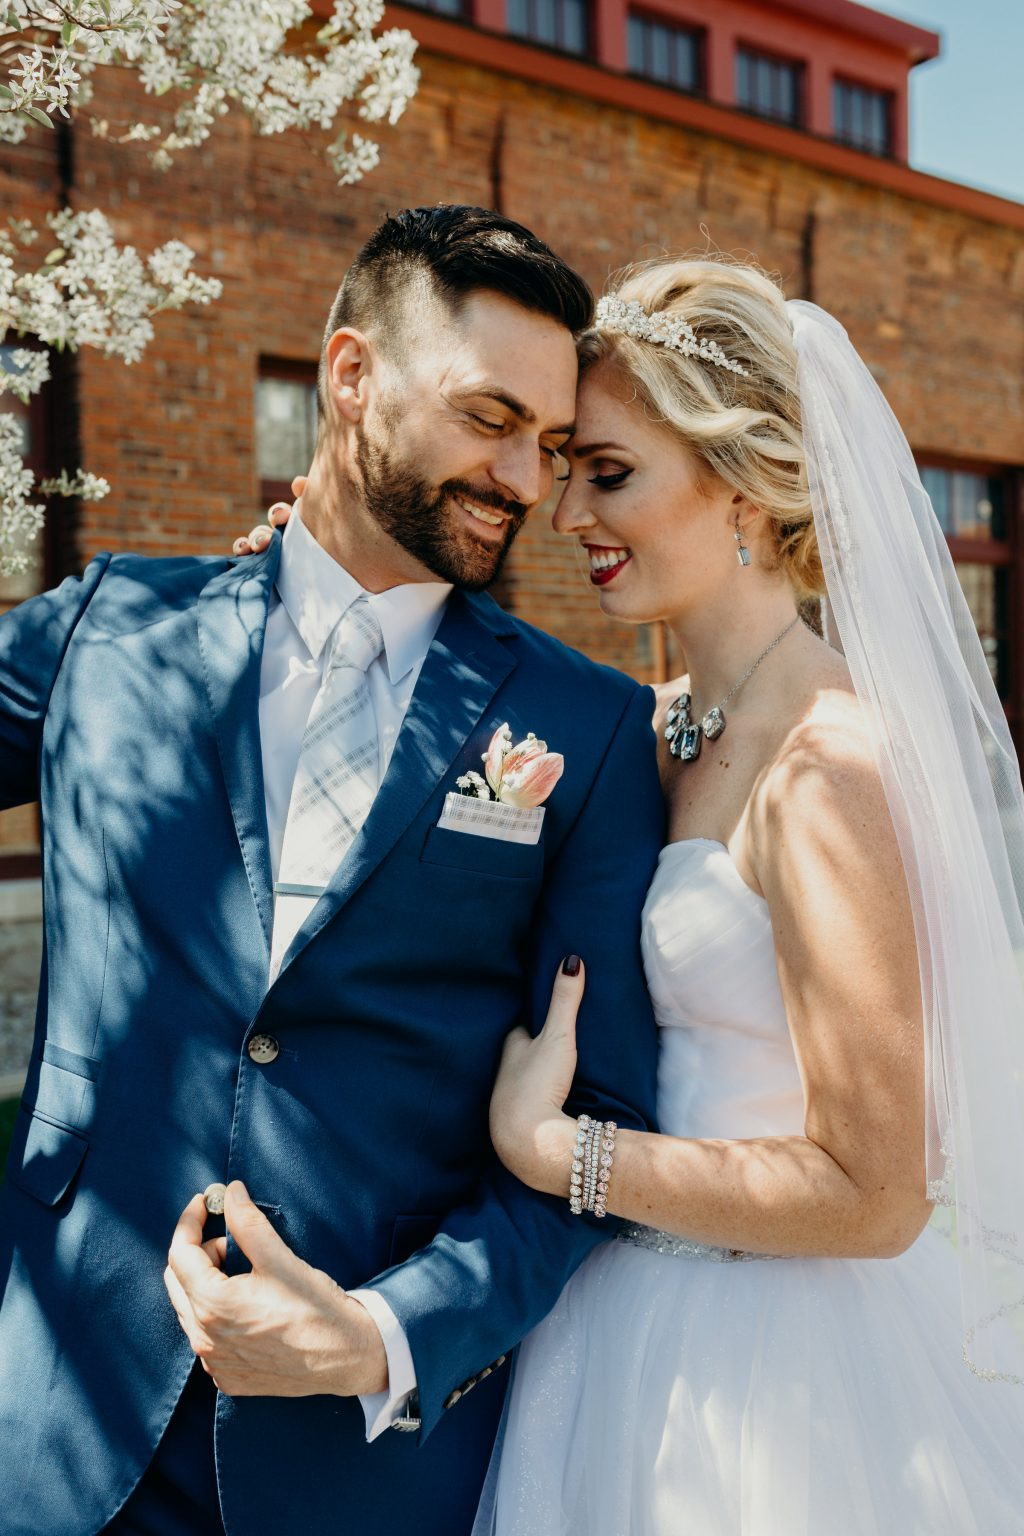 Summer wedding inspiration shoot in downtown Syracuse featuring Bella Figura wedding invitations | Photos by Nicole Lagoe Photography